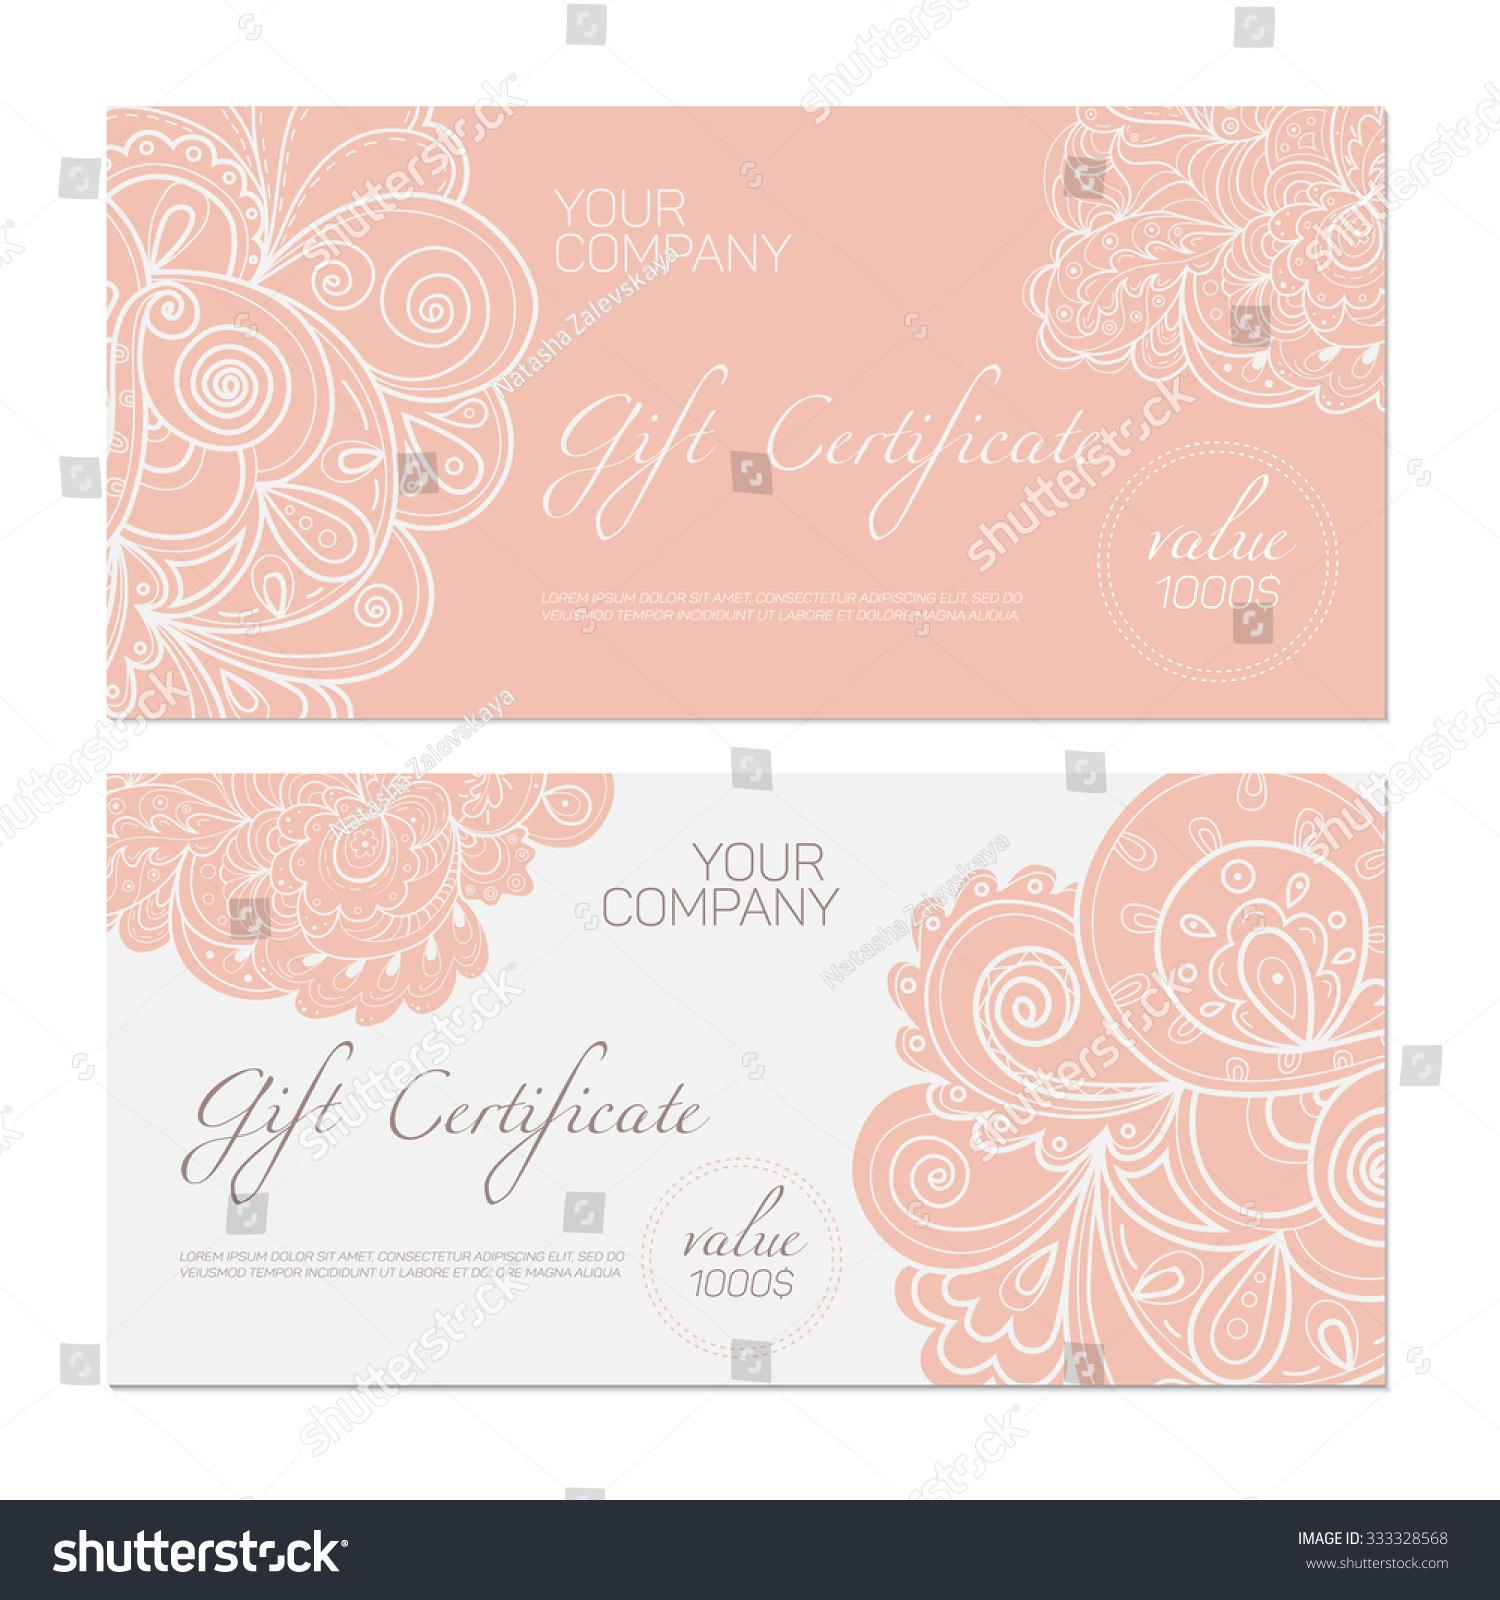 Elegant Gift Certificate Template Abstract Ornamental Stock Vector ...